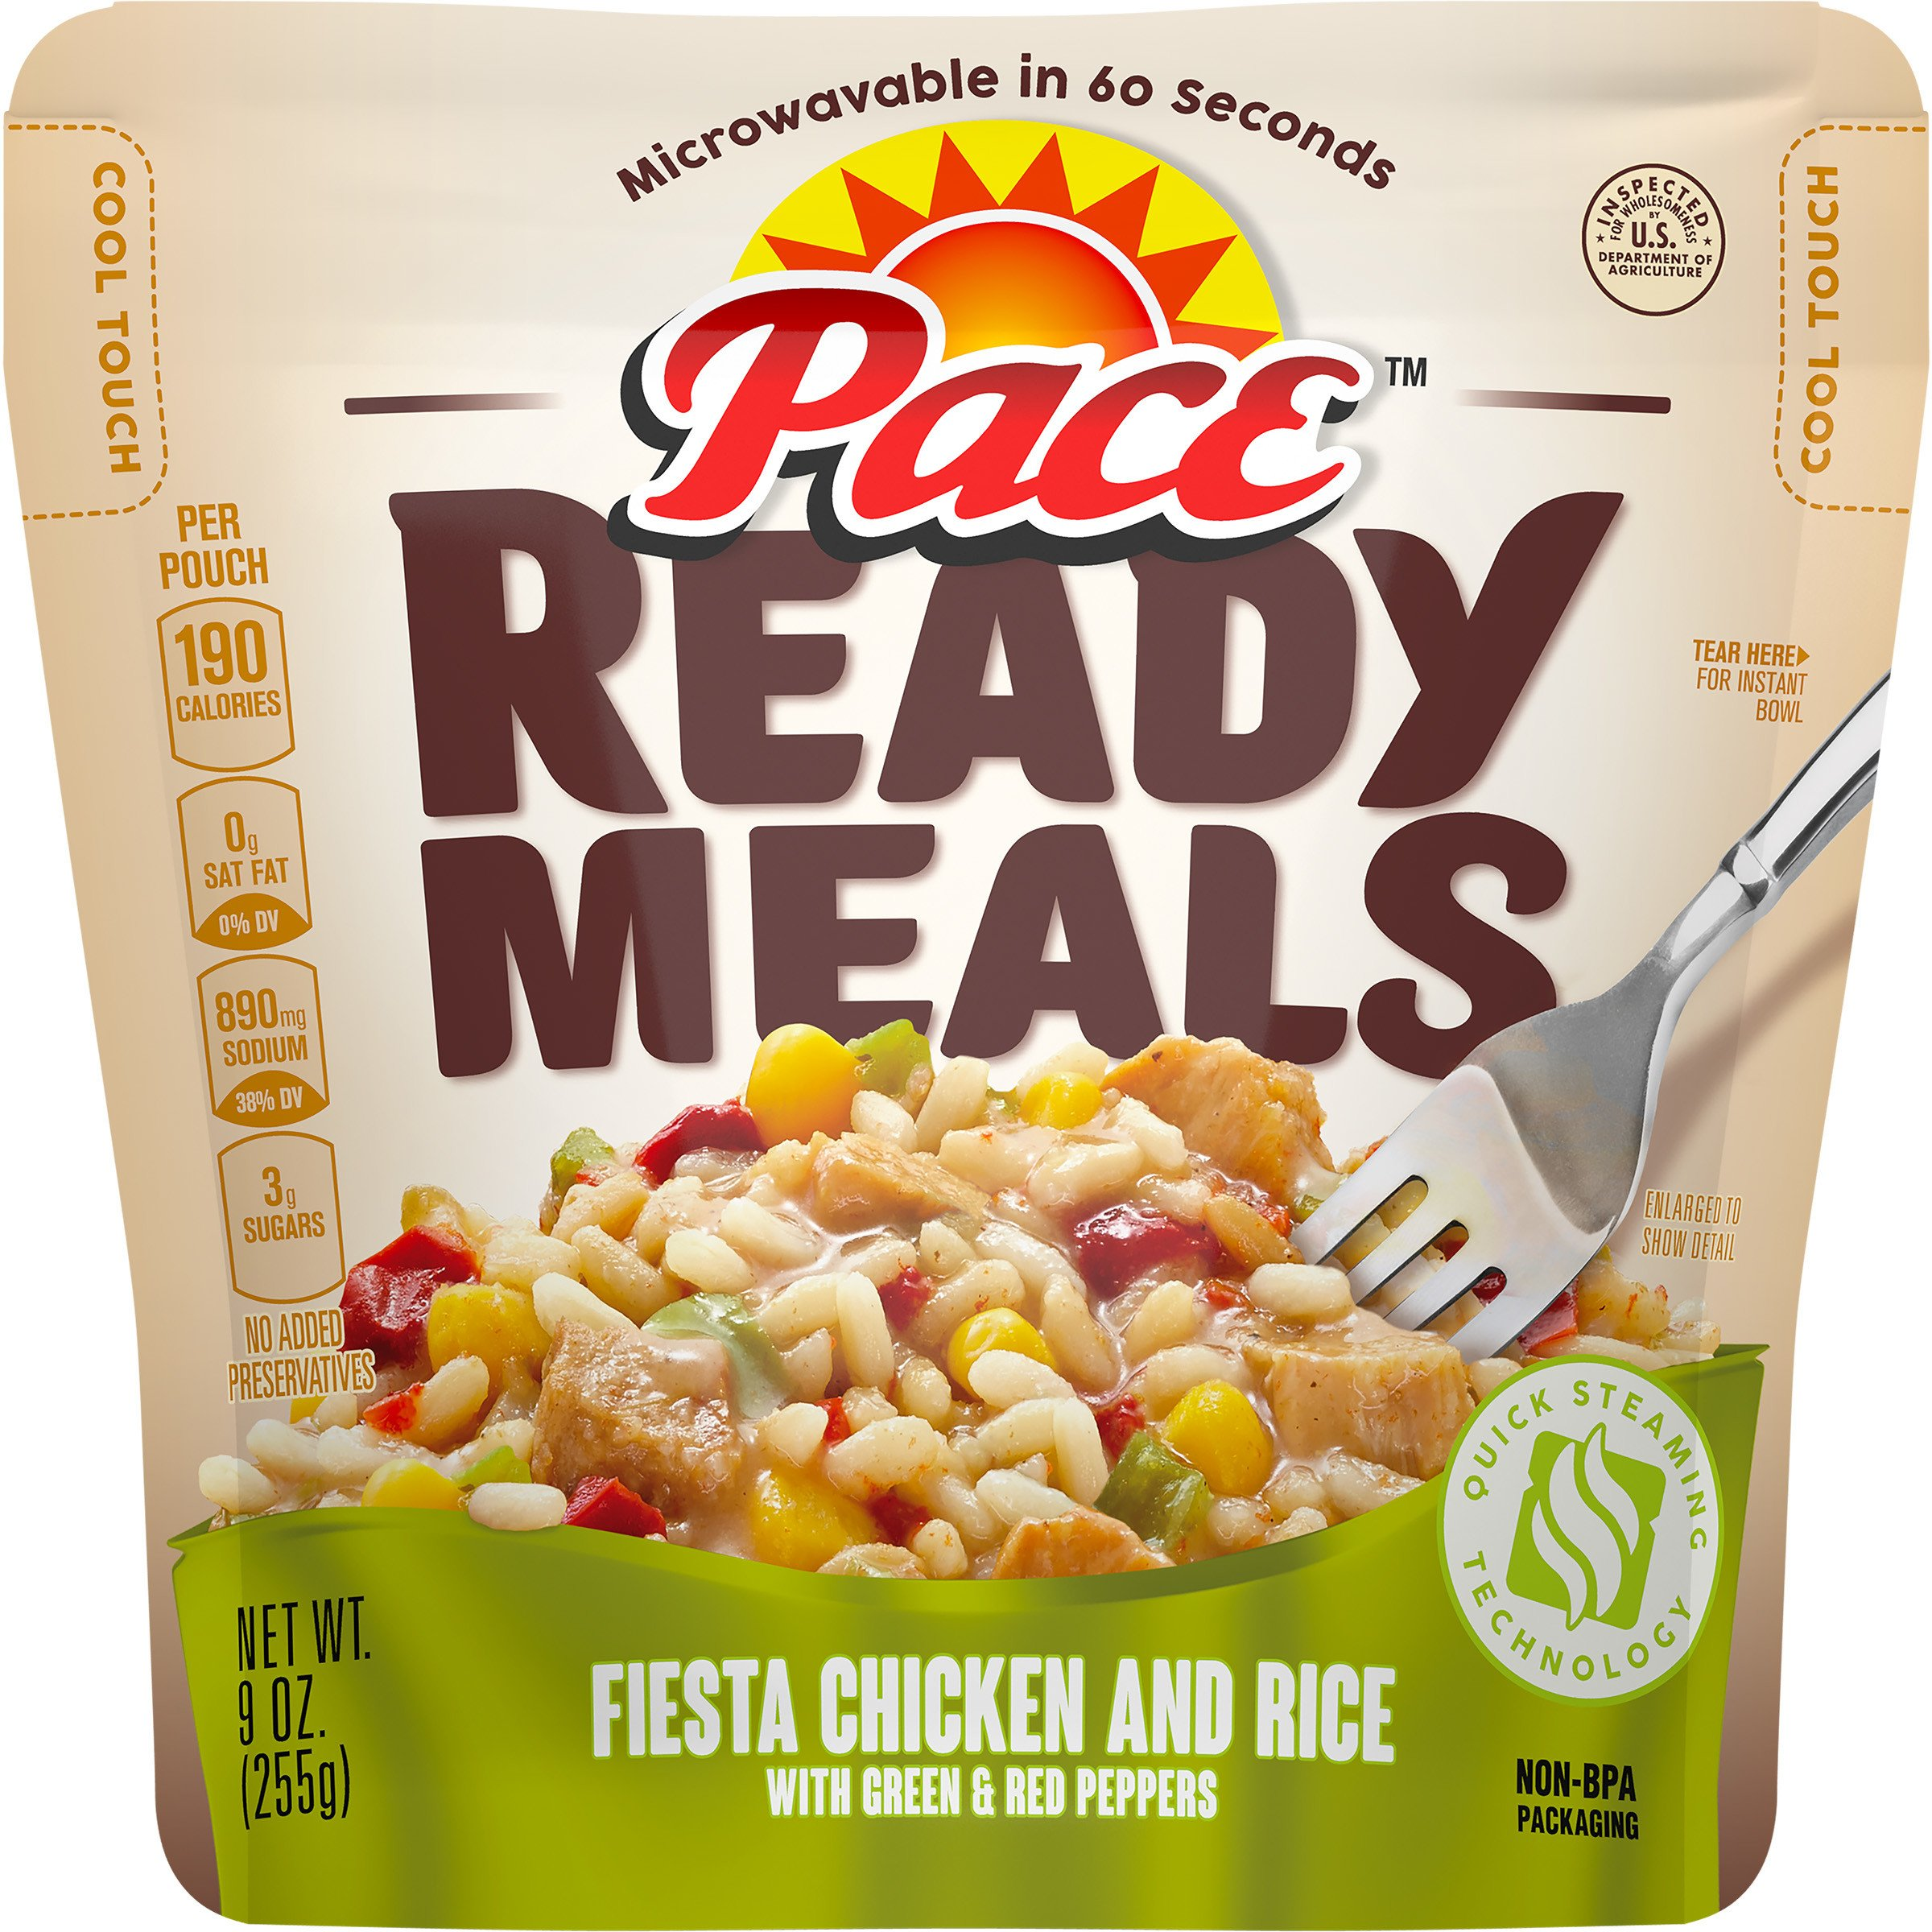 Pace Ready Meals, Fiesta Chicken and Rice with Green & Red Peppers, 9 Ounce (Pack of 6) by Pace